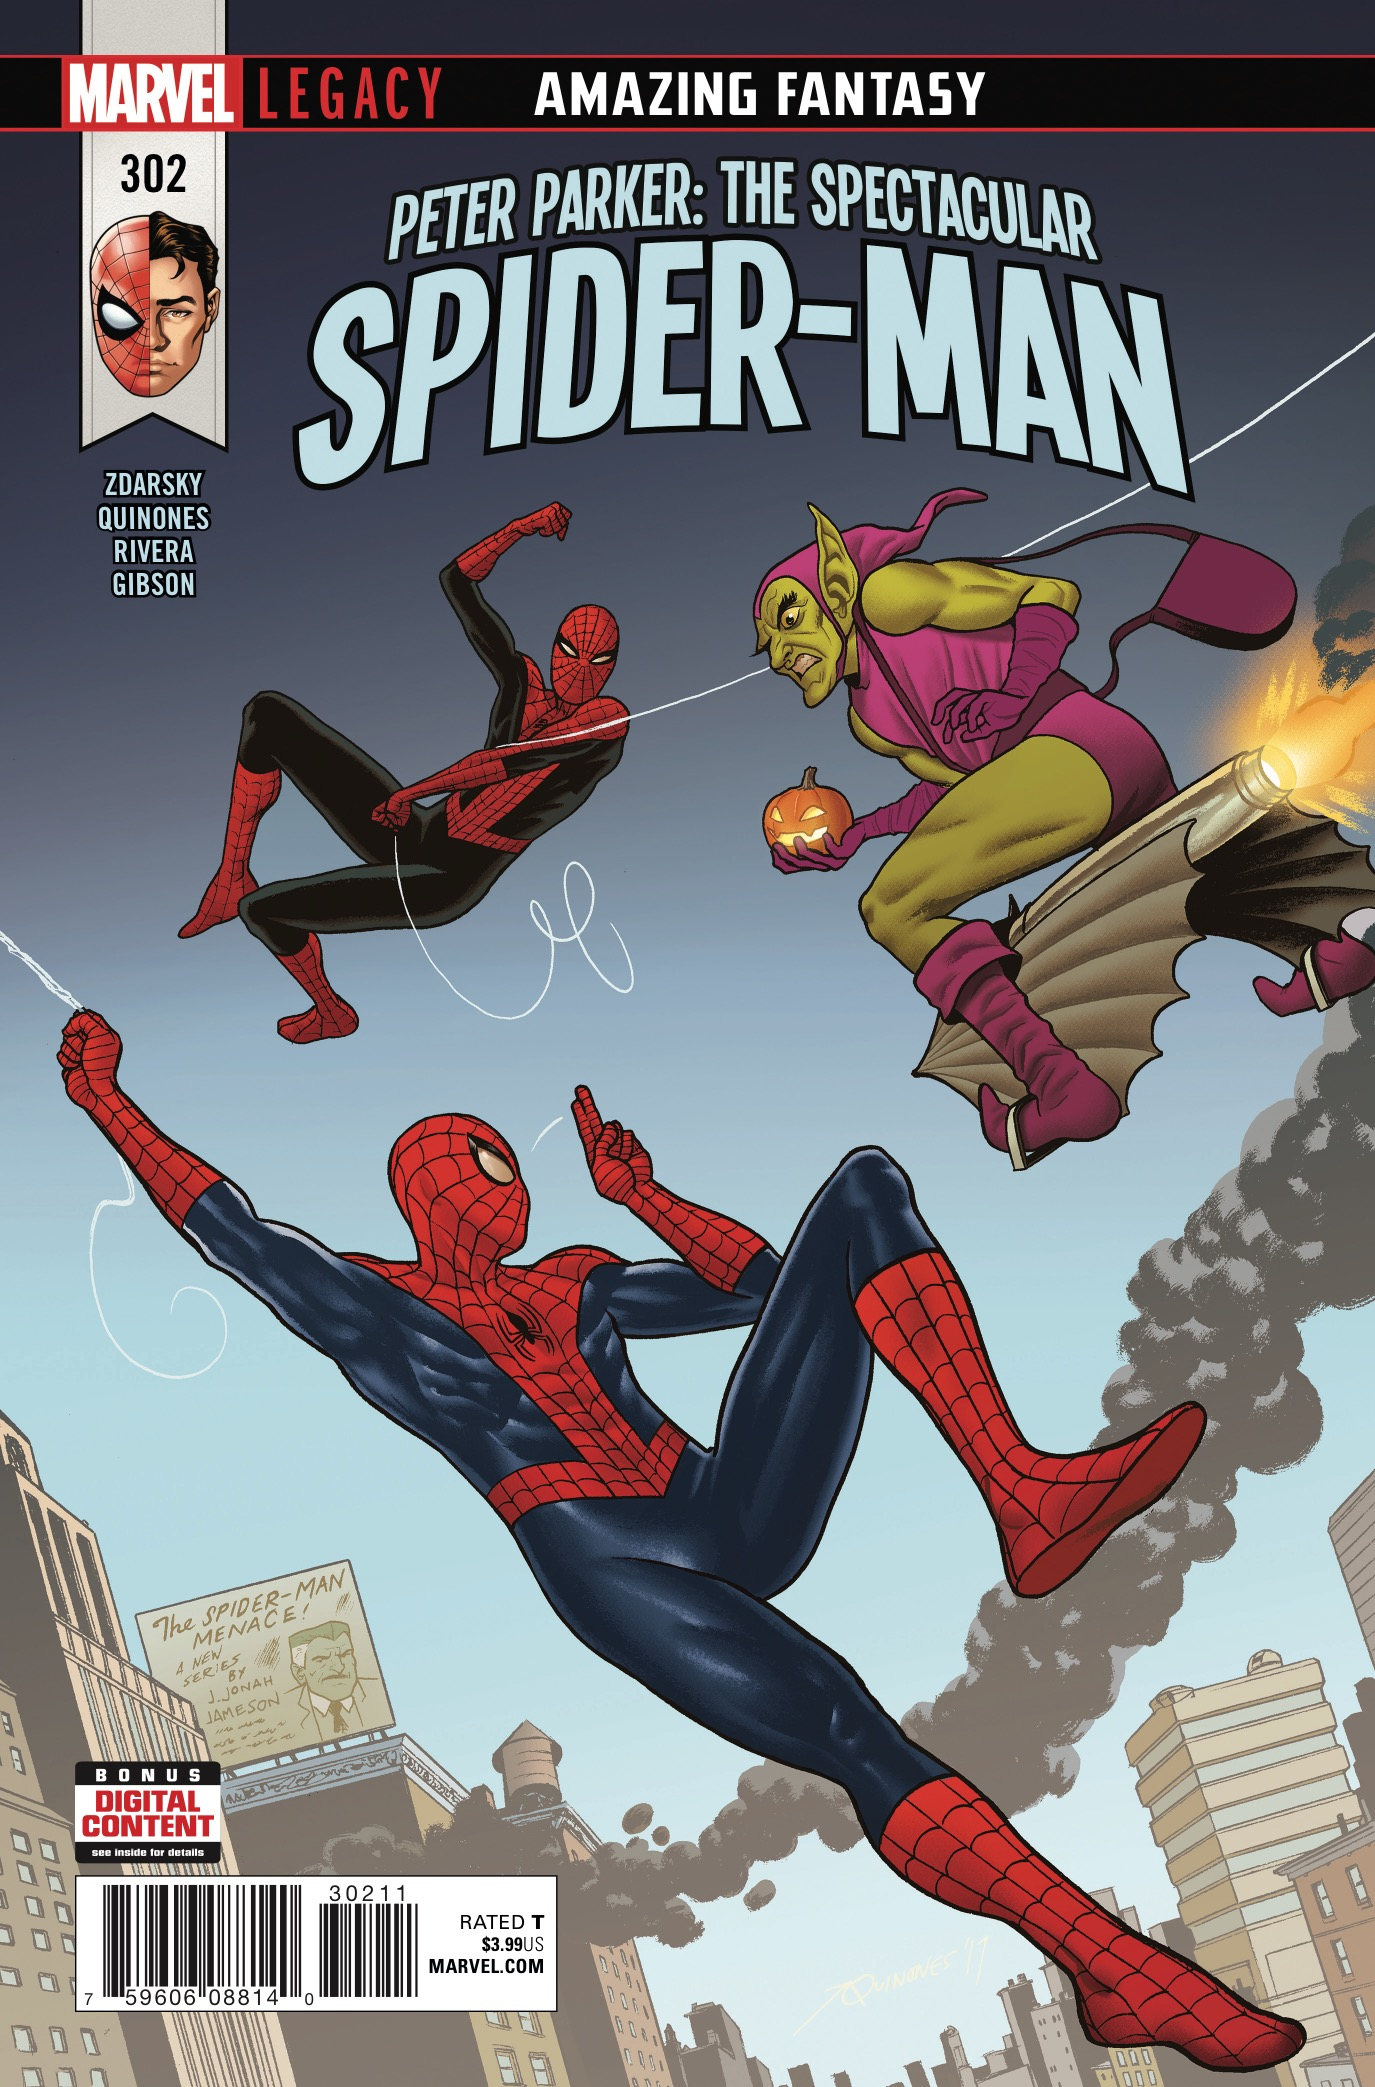 Image result for PETER PARKER: THE SPECTACULAR SPIDER-MAN #302